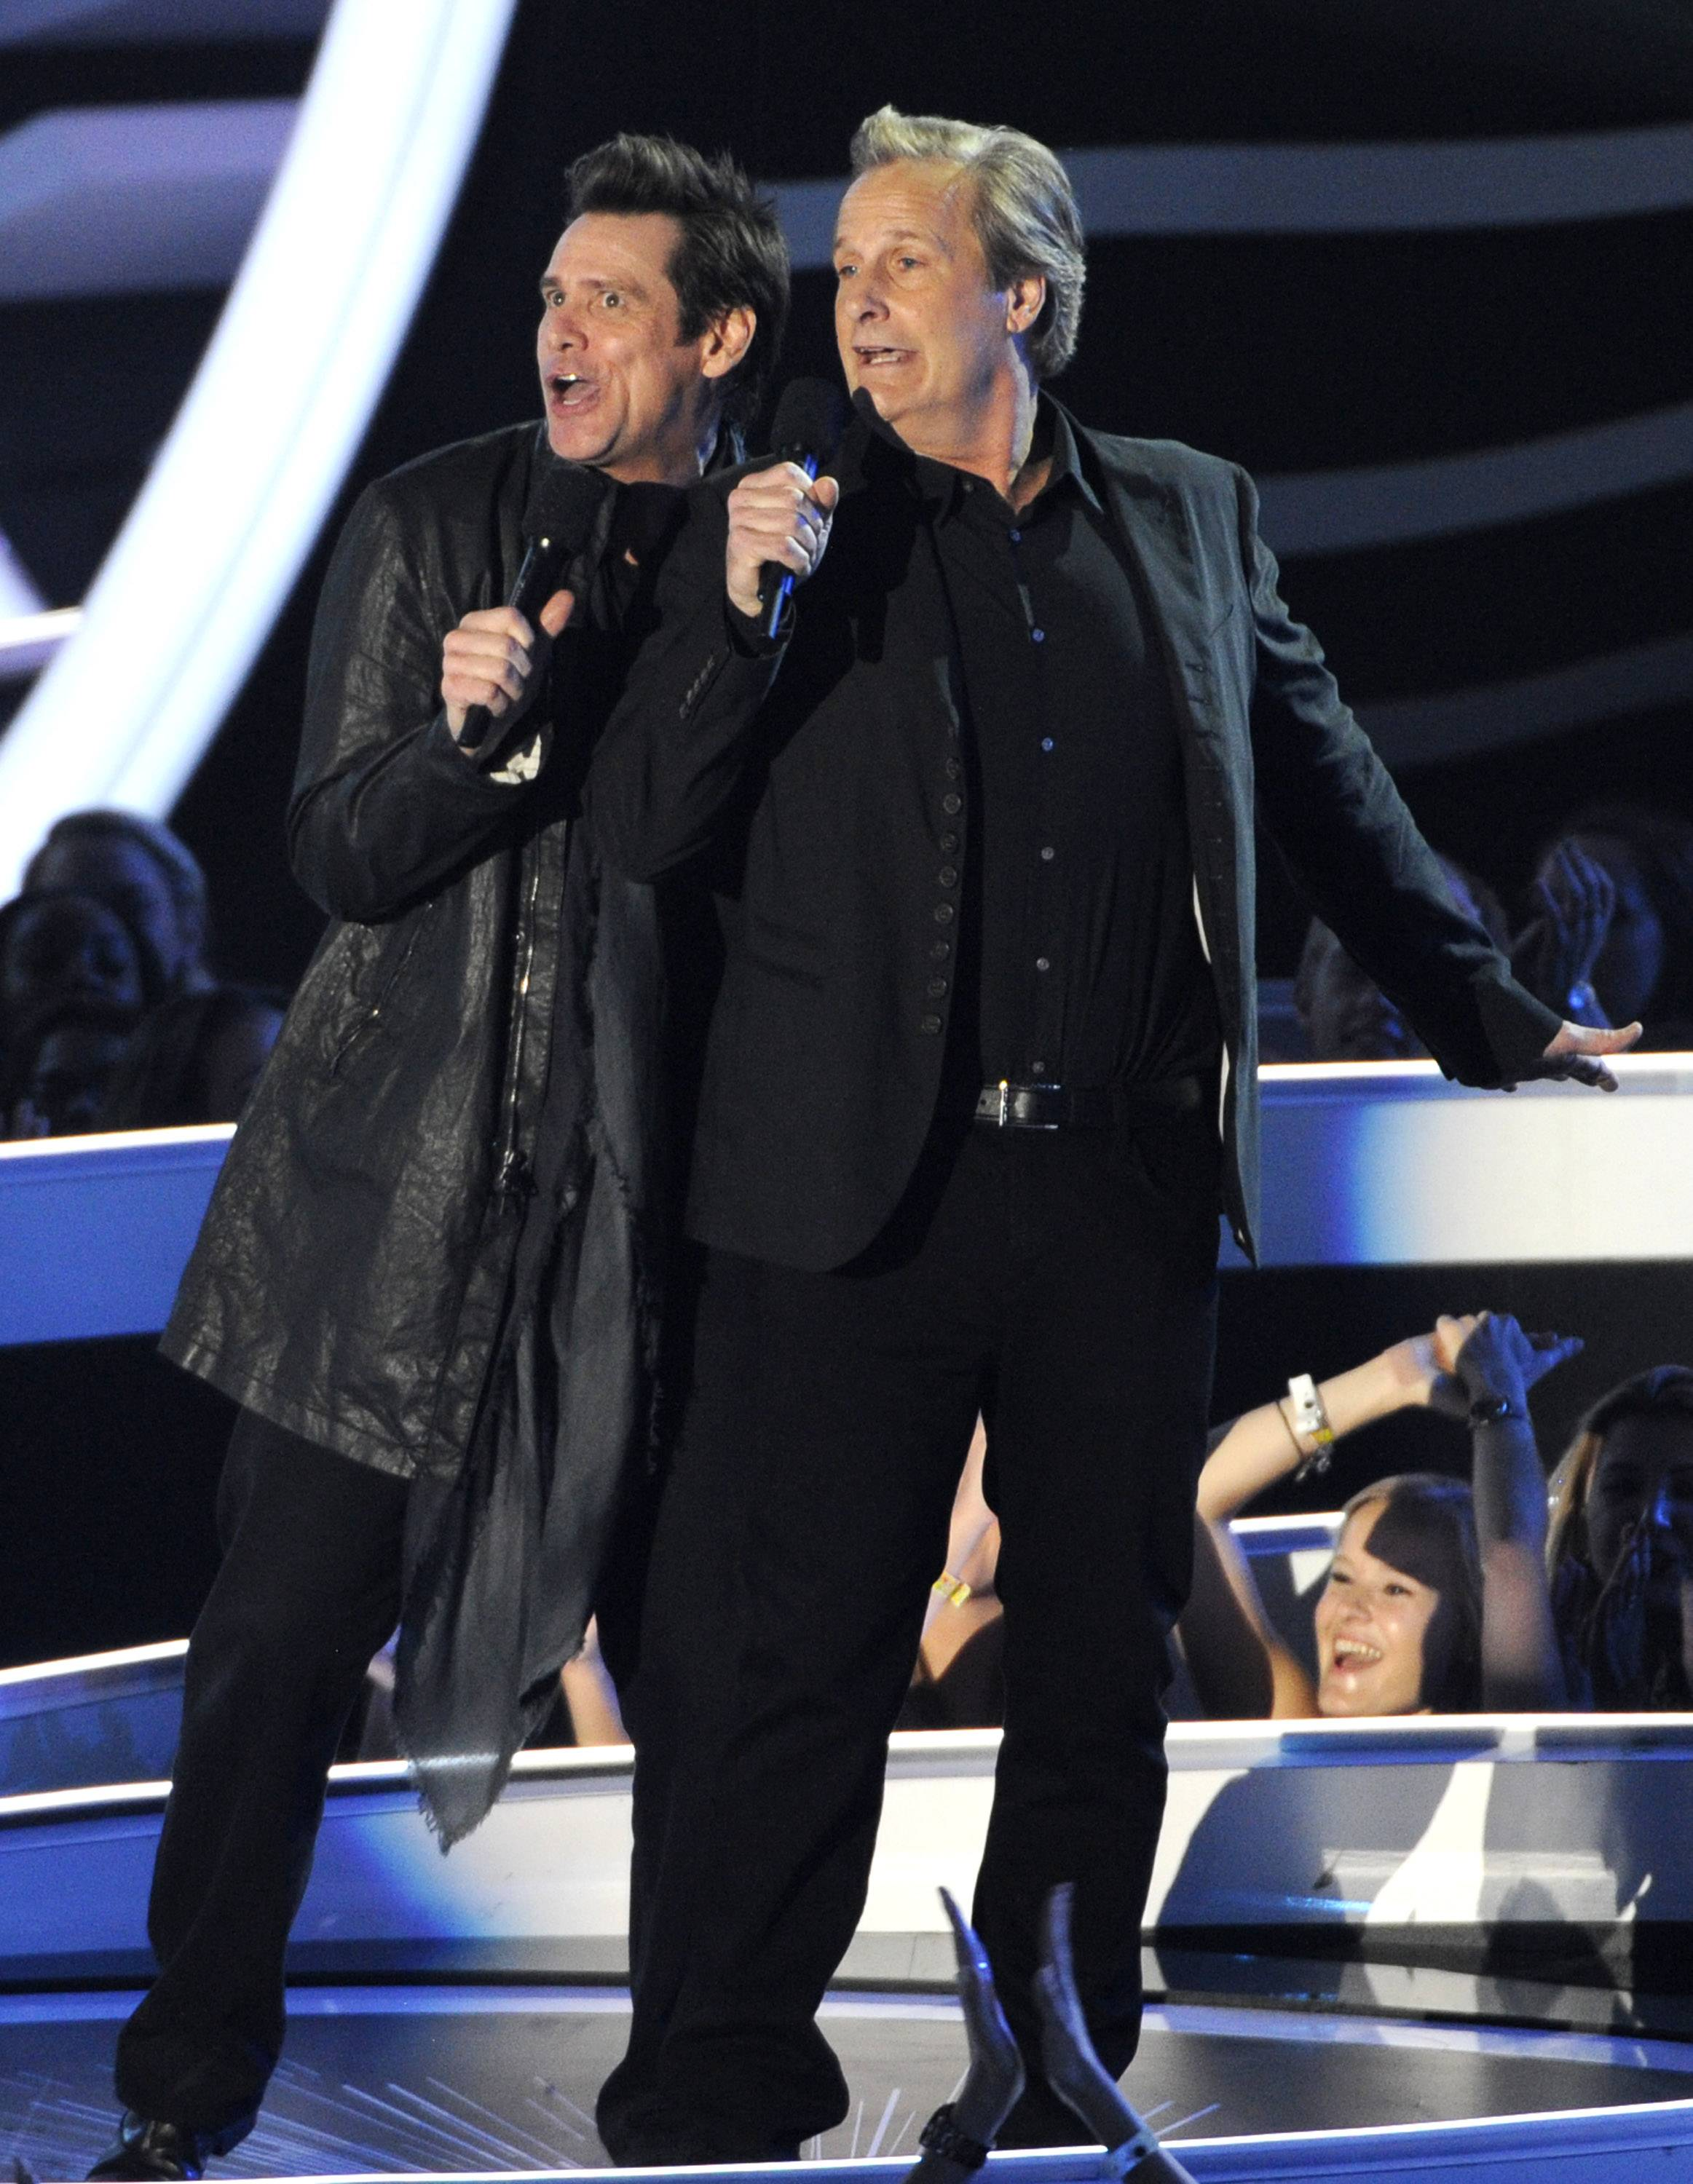 Jim Carrey, left, and Jeff Daniels present the award for Best Pop Video at the MTV Video Music Awards.